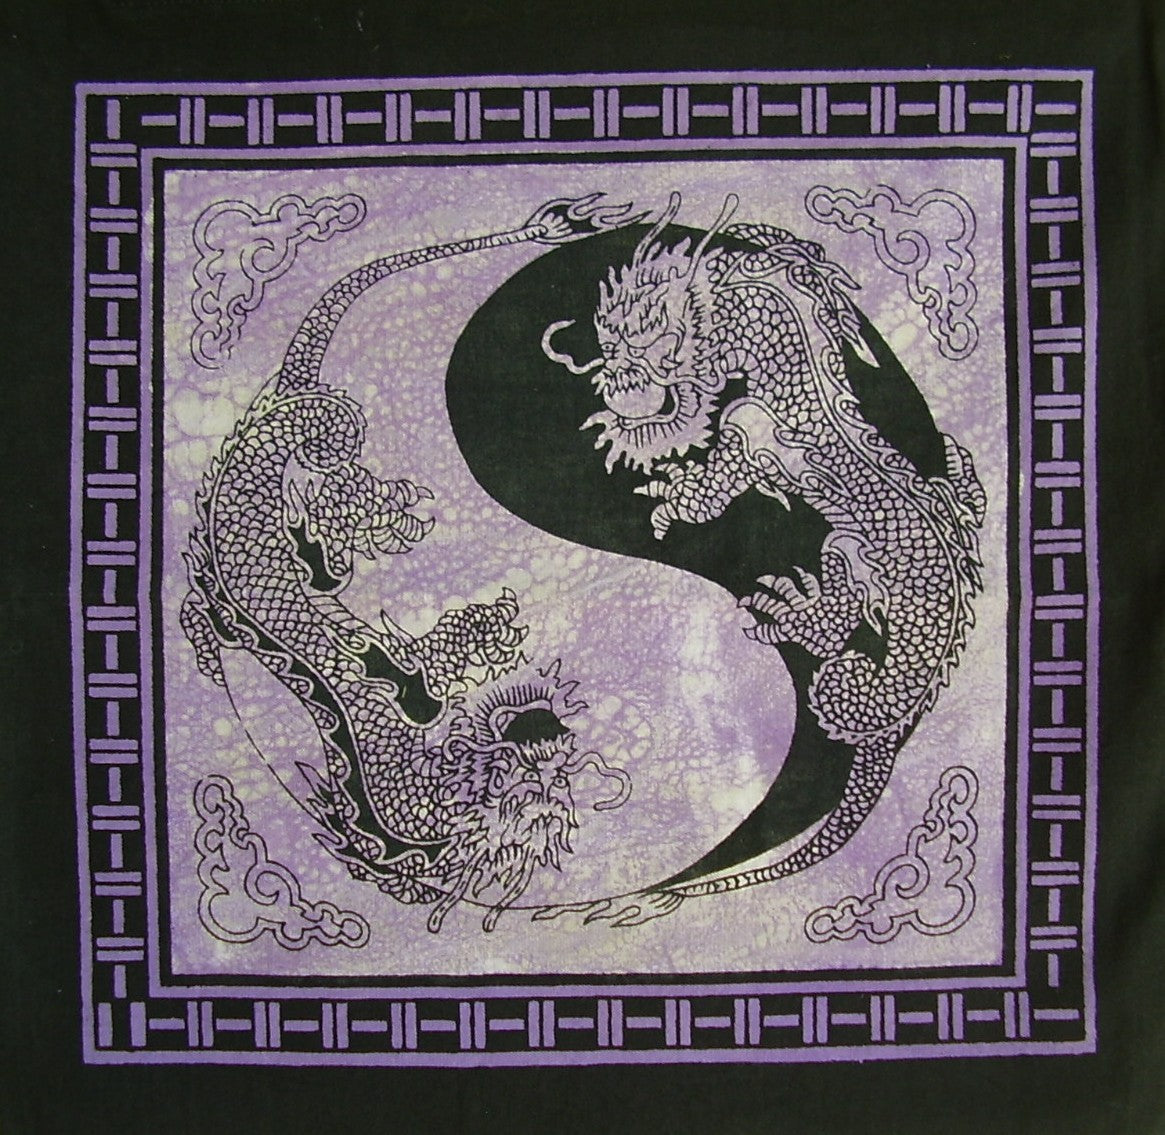 Yin Yang Dragon Cushion Pillow Cover Black/Purple 18 x 18